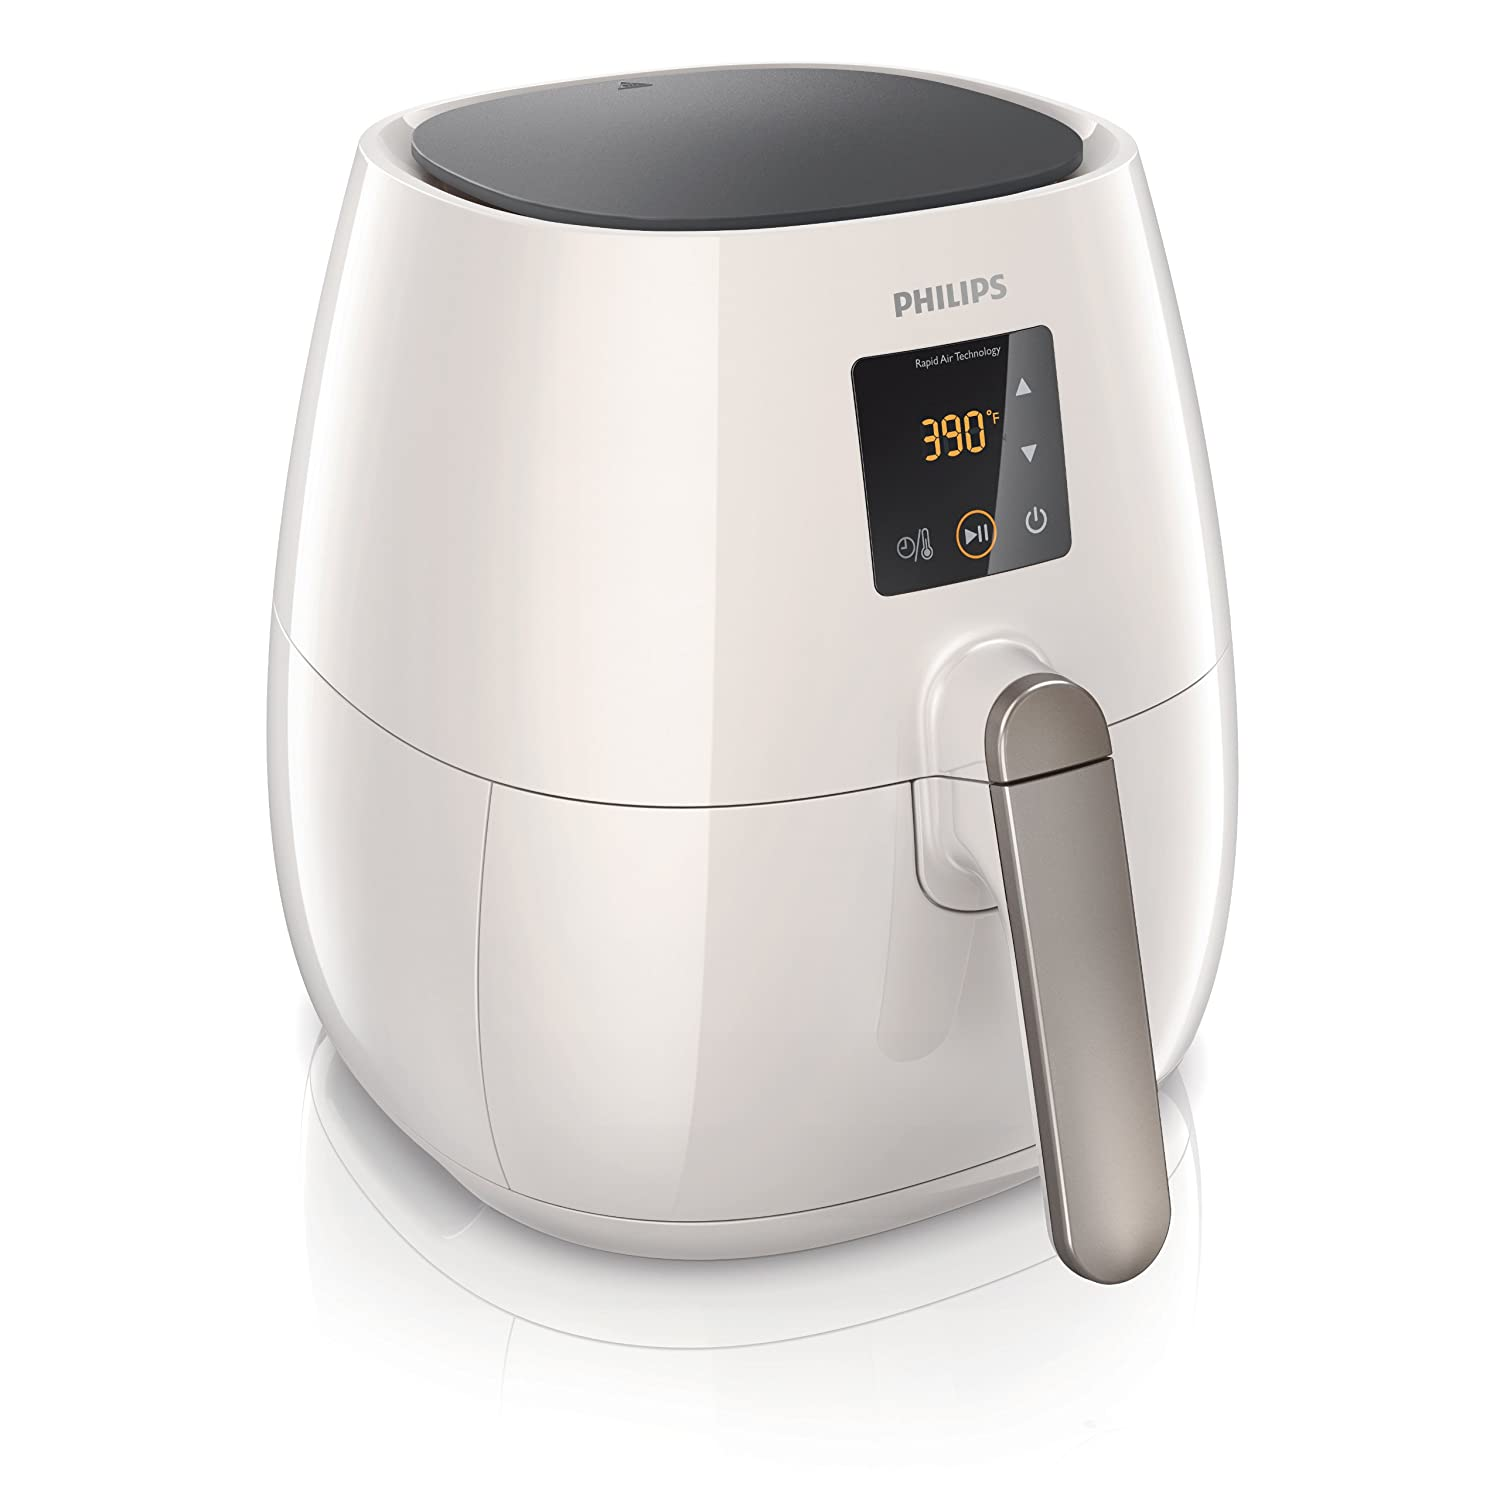 philips-air-fryer-disadvantages-that-you-should-be-aware-of